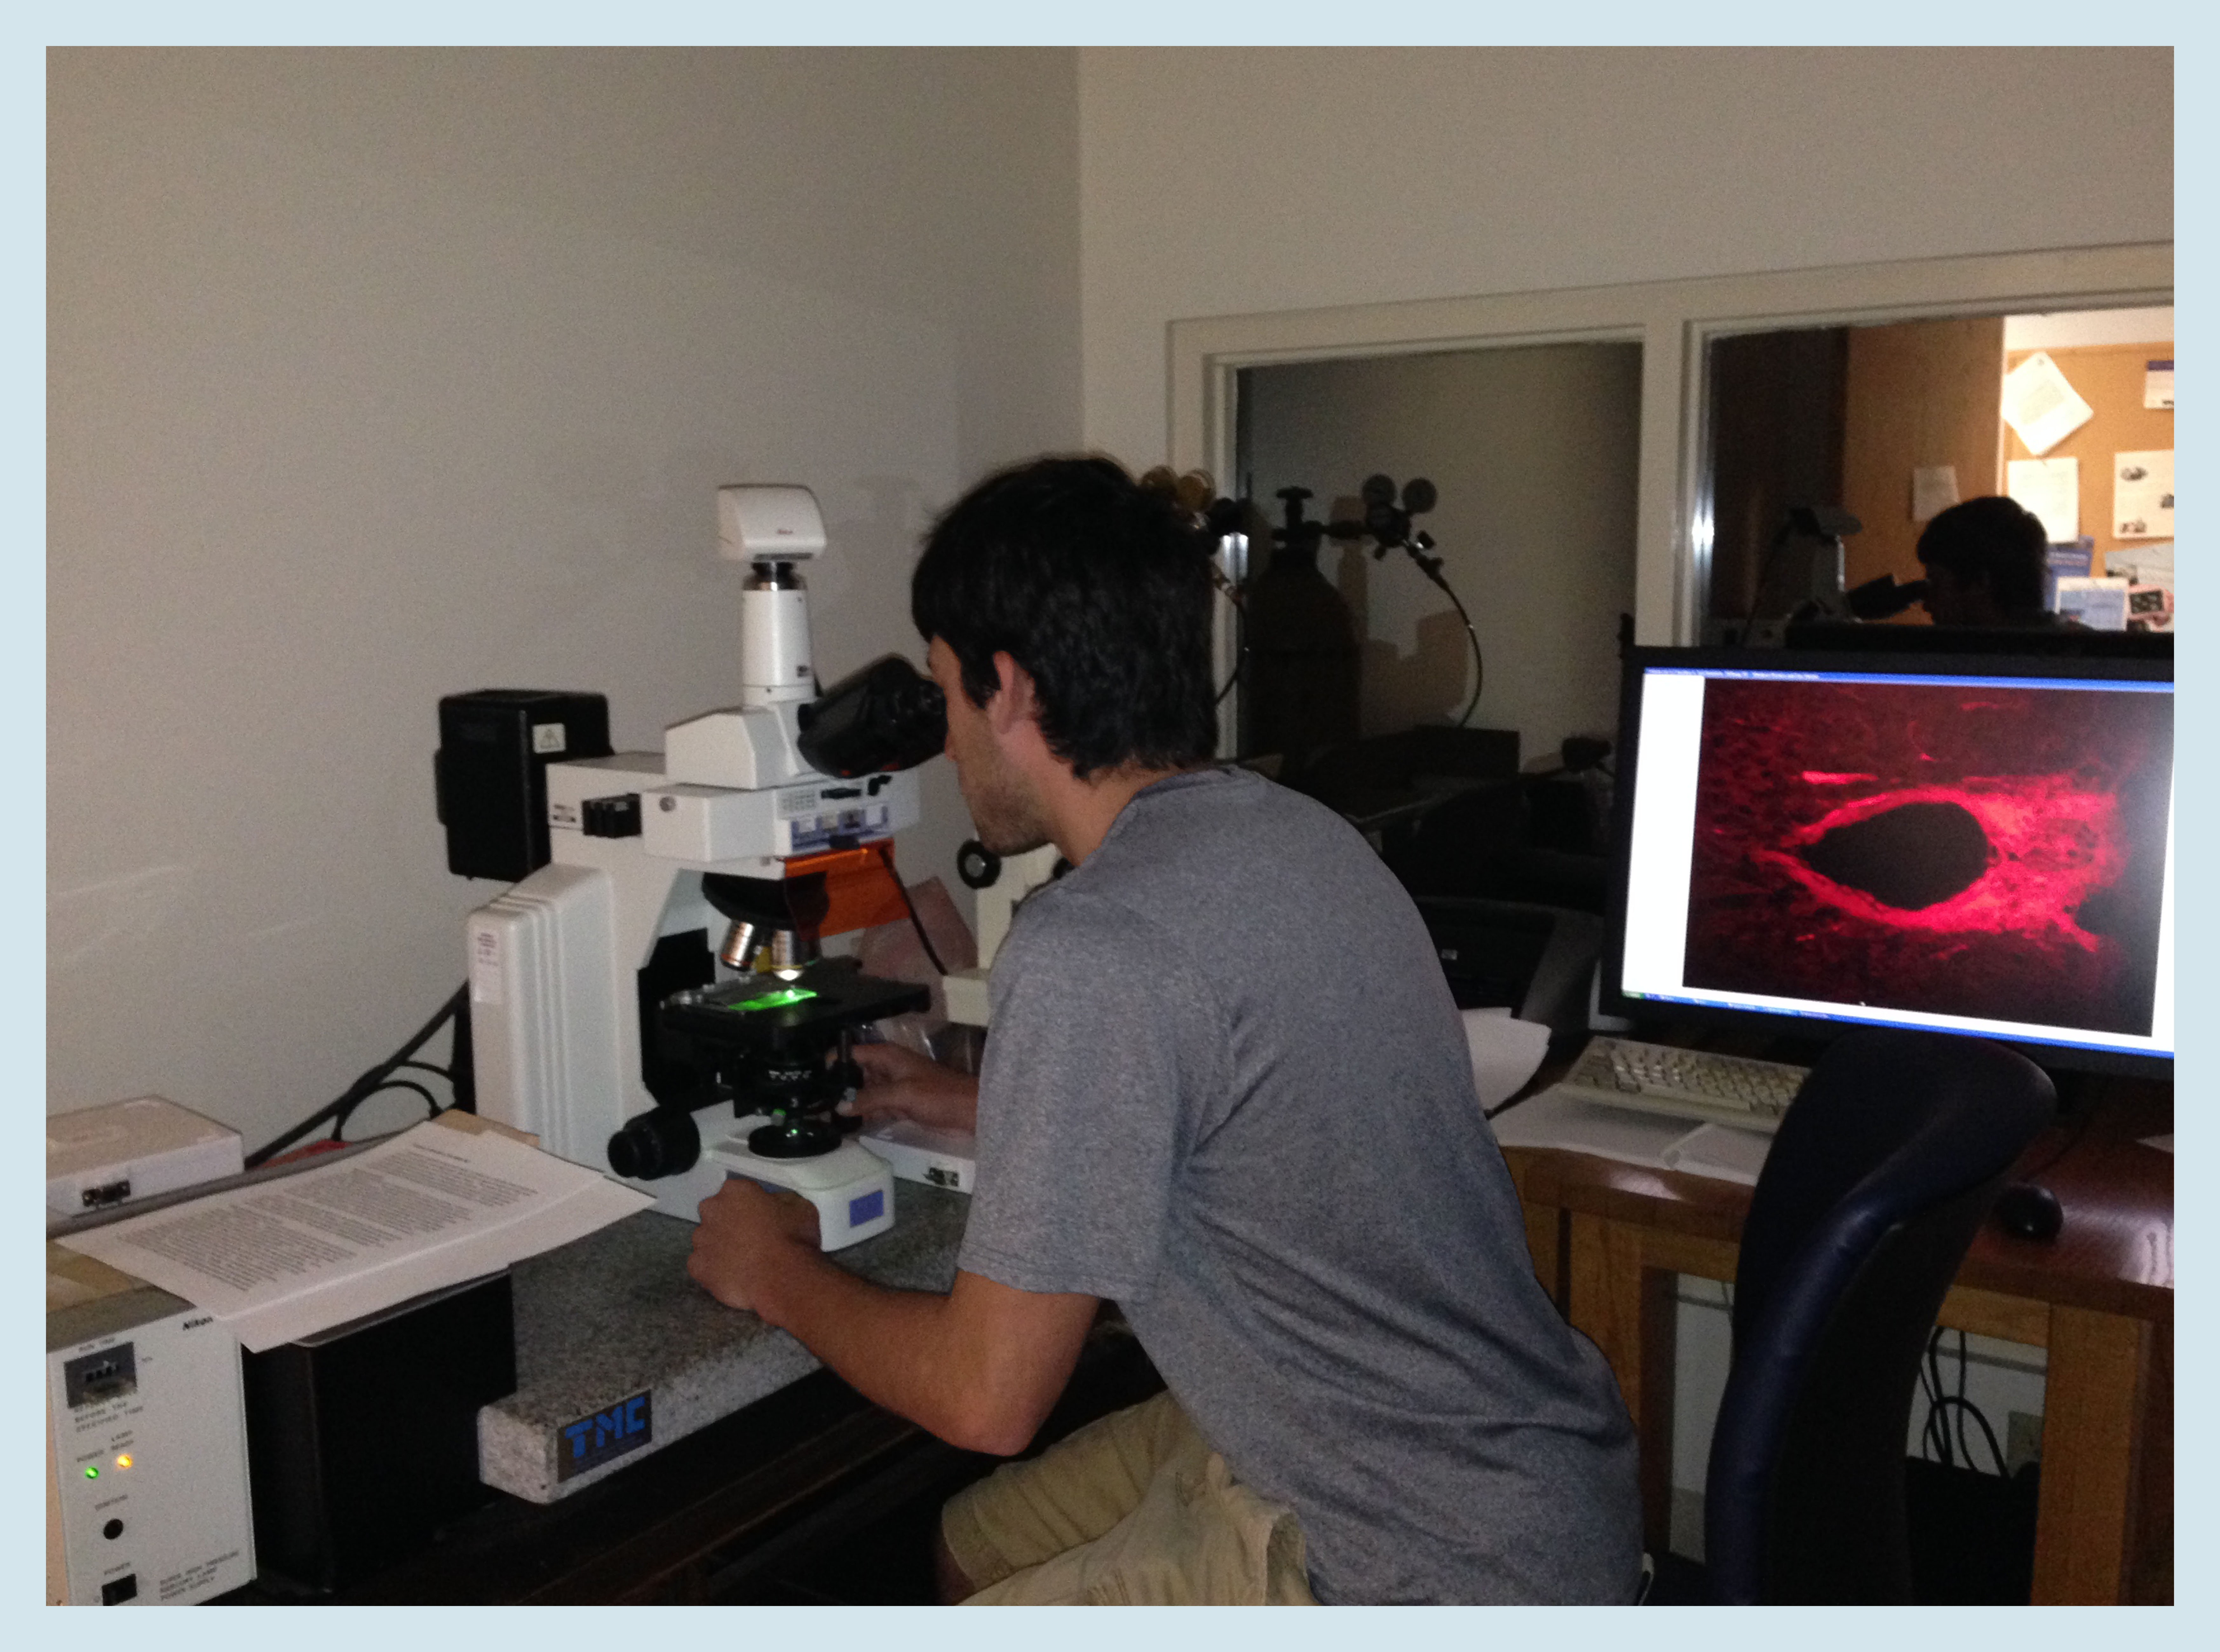 senior comp project psychology allegheny college meadville pa microscope1